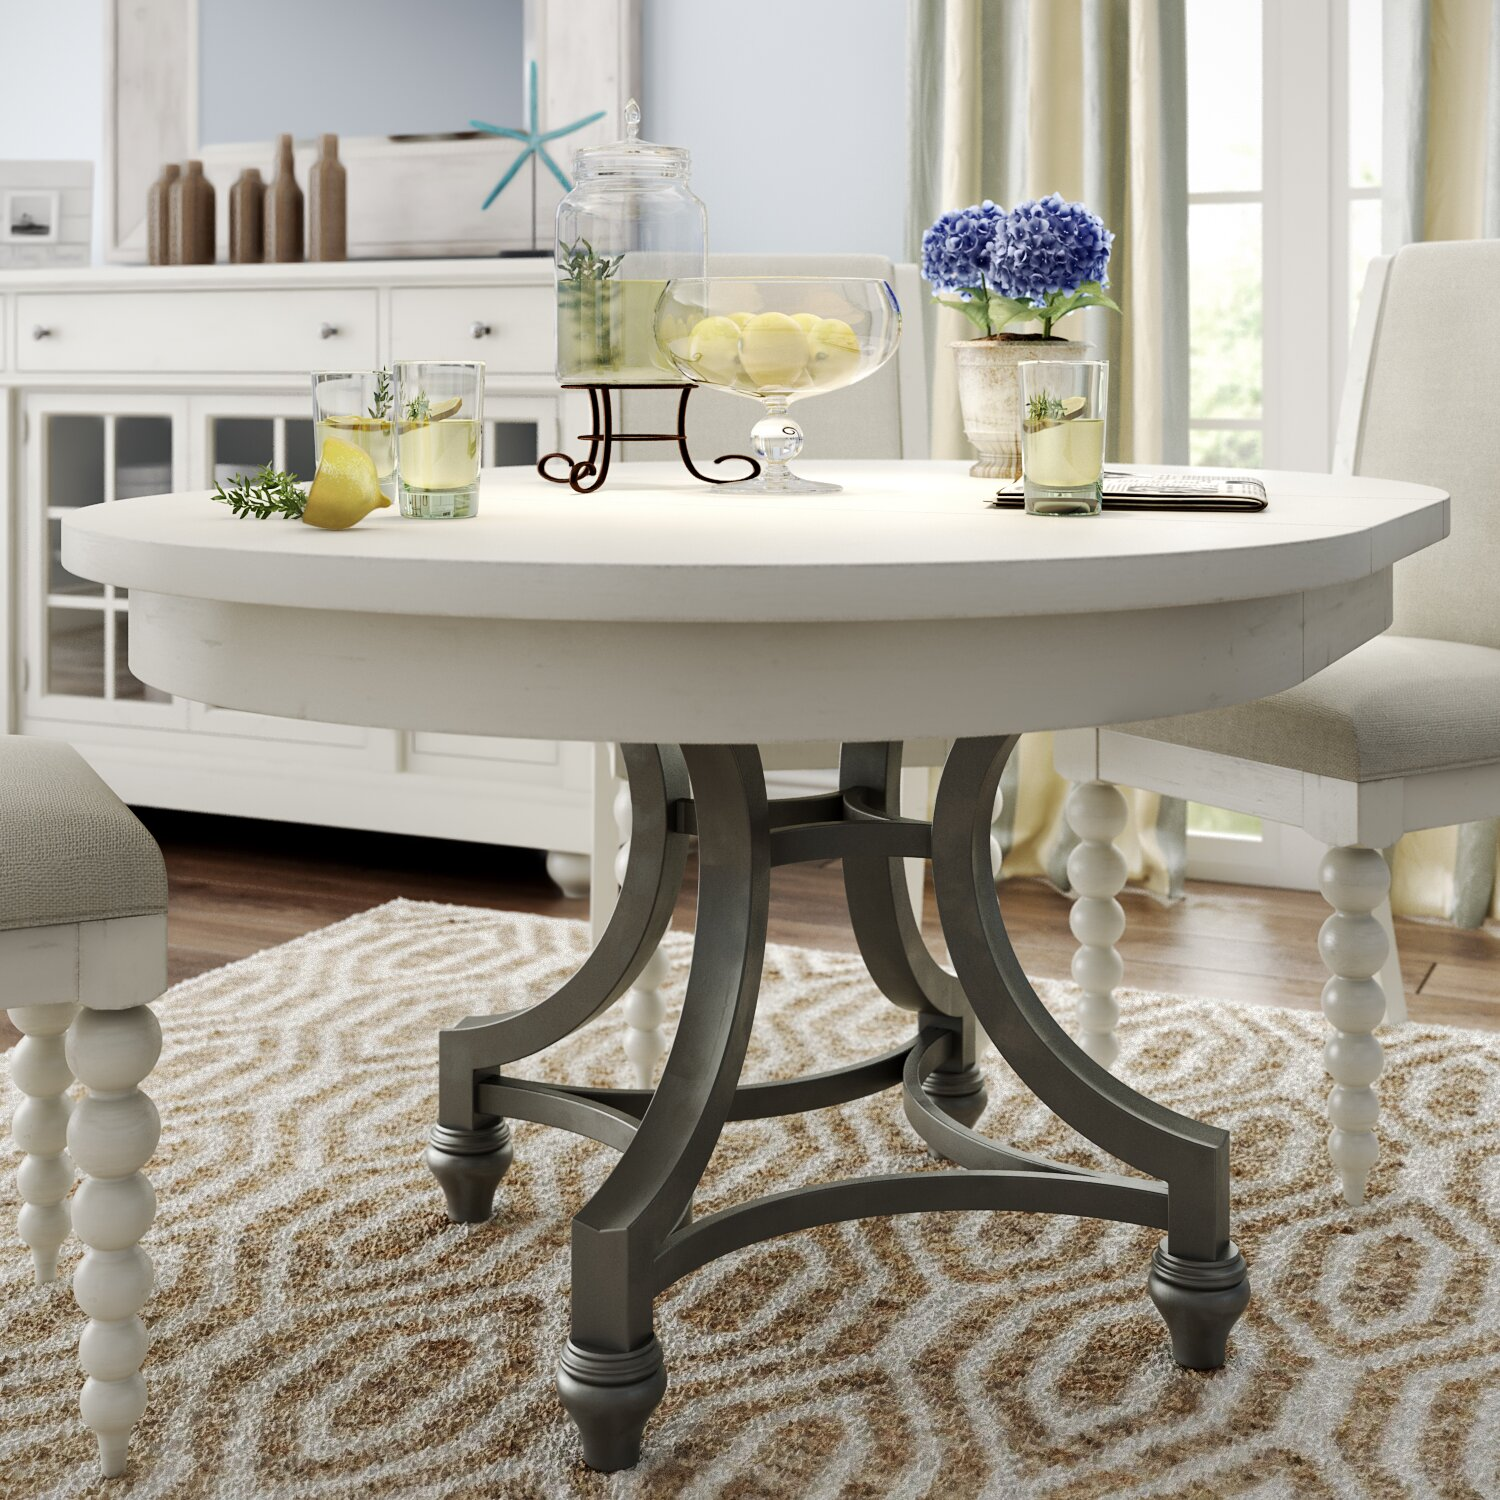 Round Country Kitchen Table August Grove Baroncourt Round Dining Table Reviews Wayfair